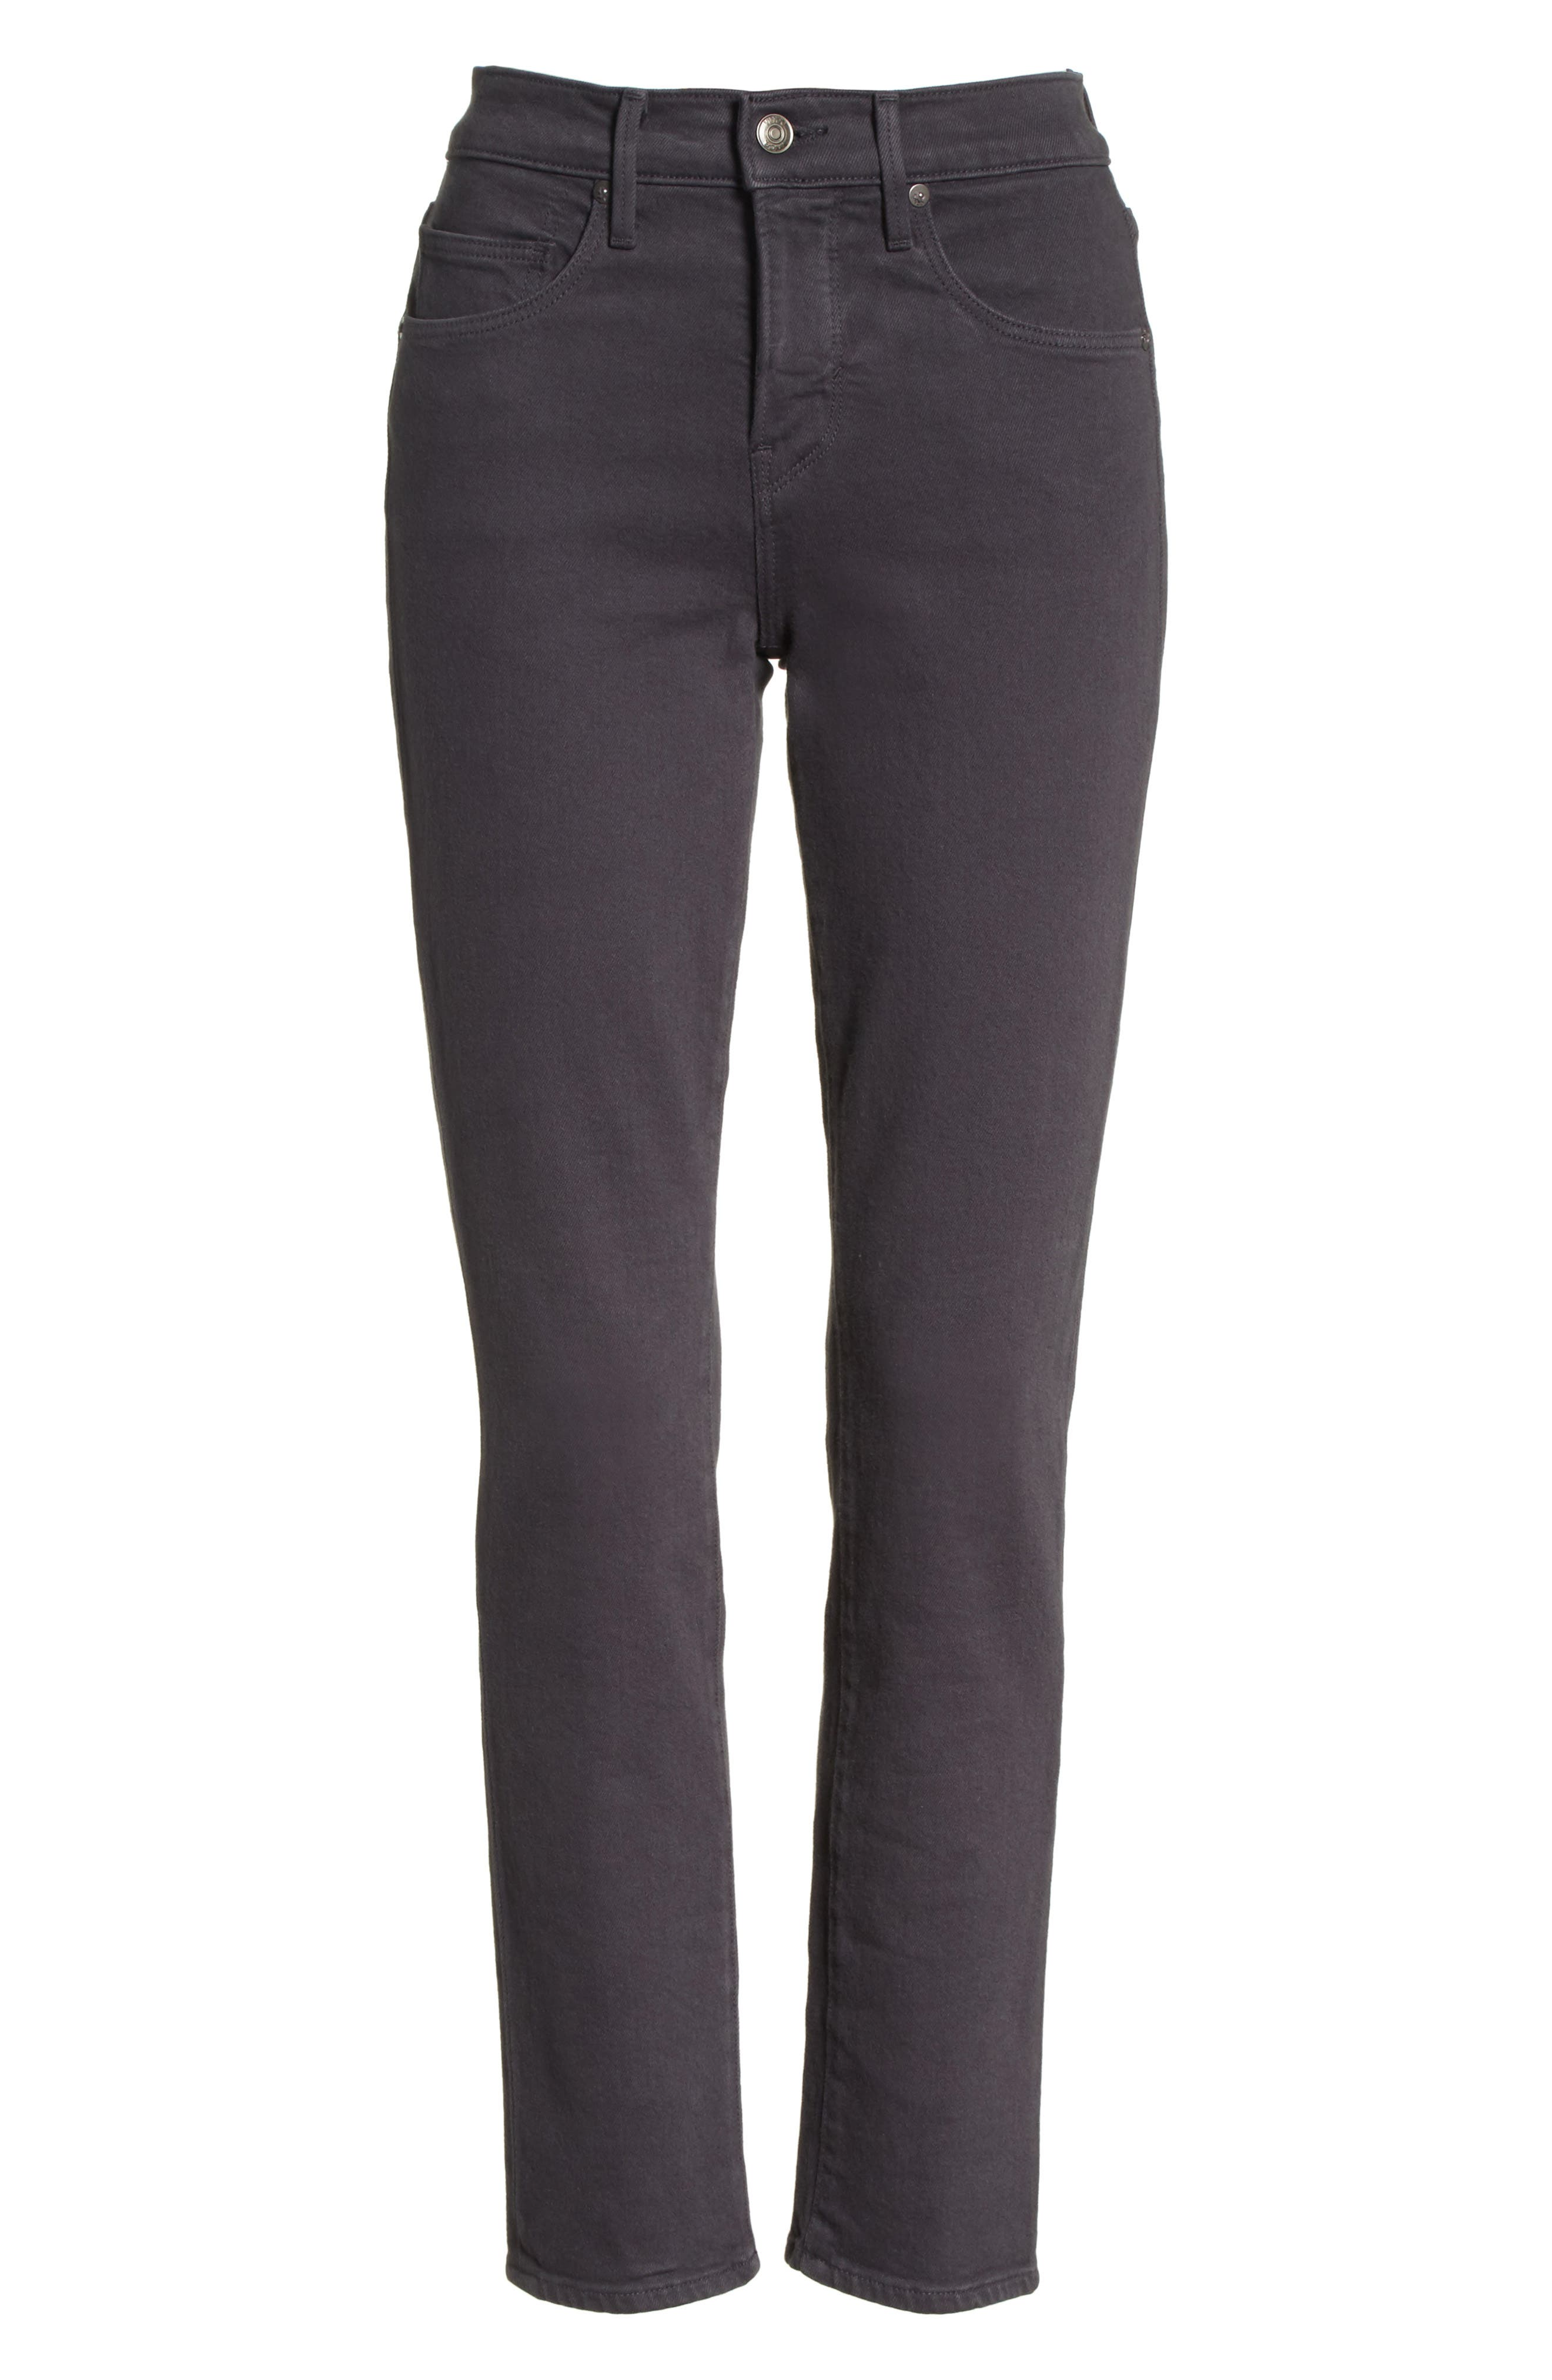 Skinny Crop Jeans,                             Alternate thumbnail 7, color,                             023